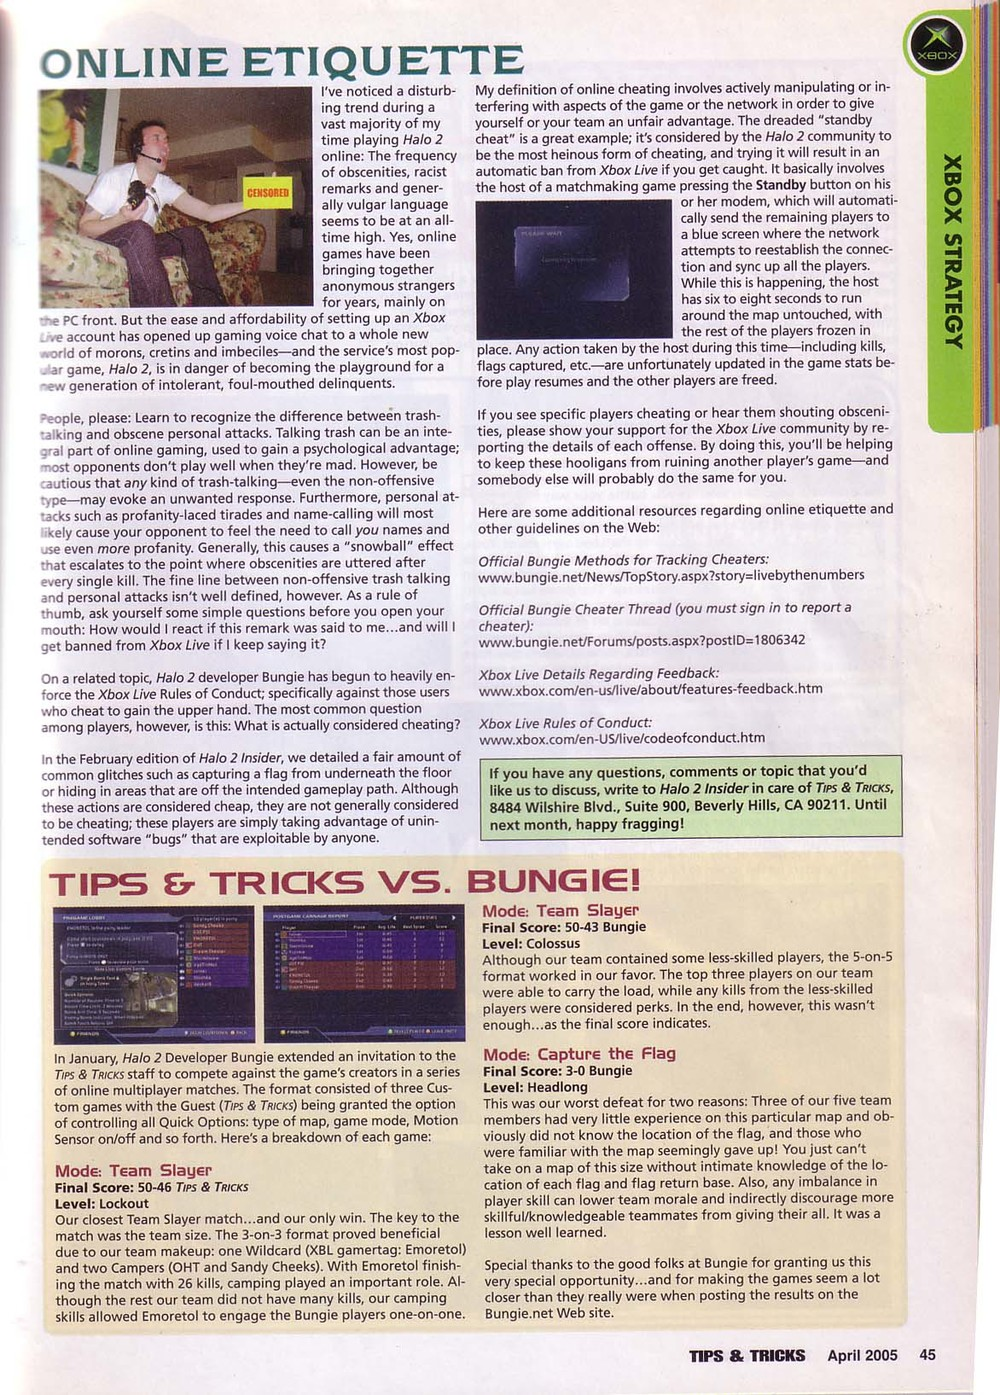 TipsandTricks_April_2005_Halo_pg4_Strategy.jpg